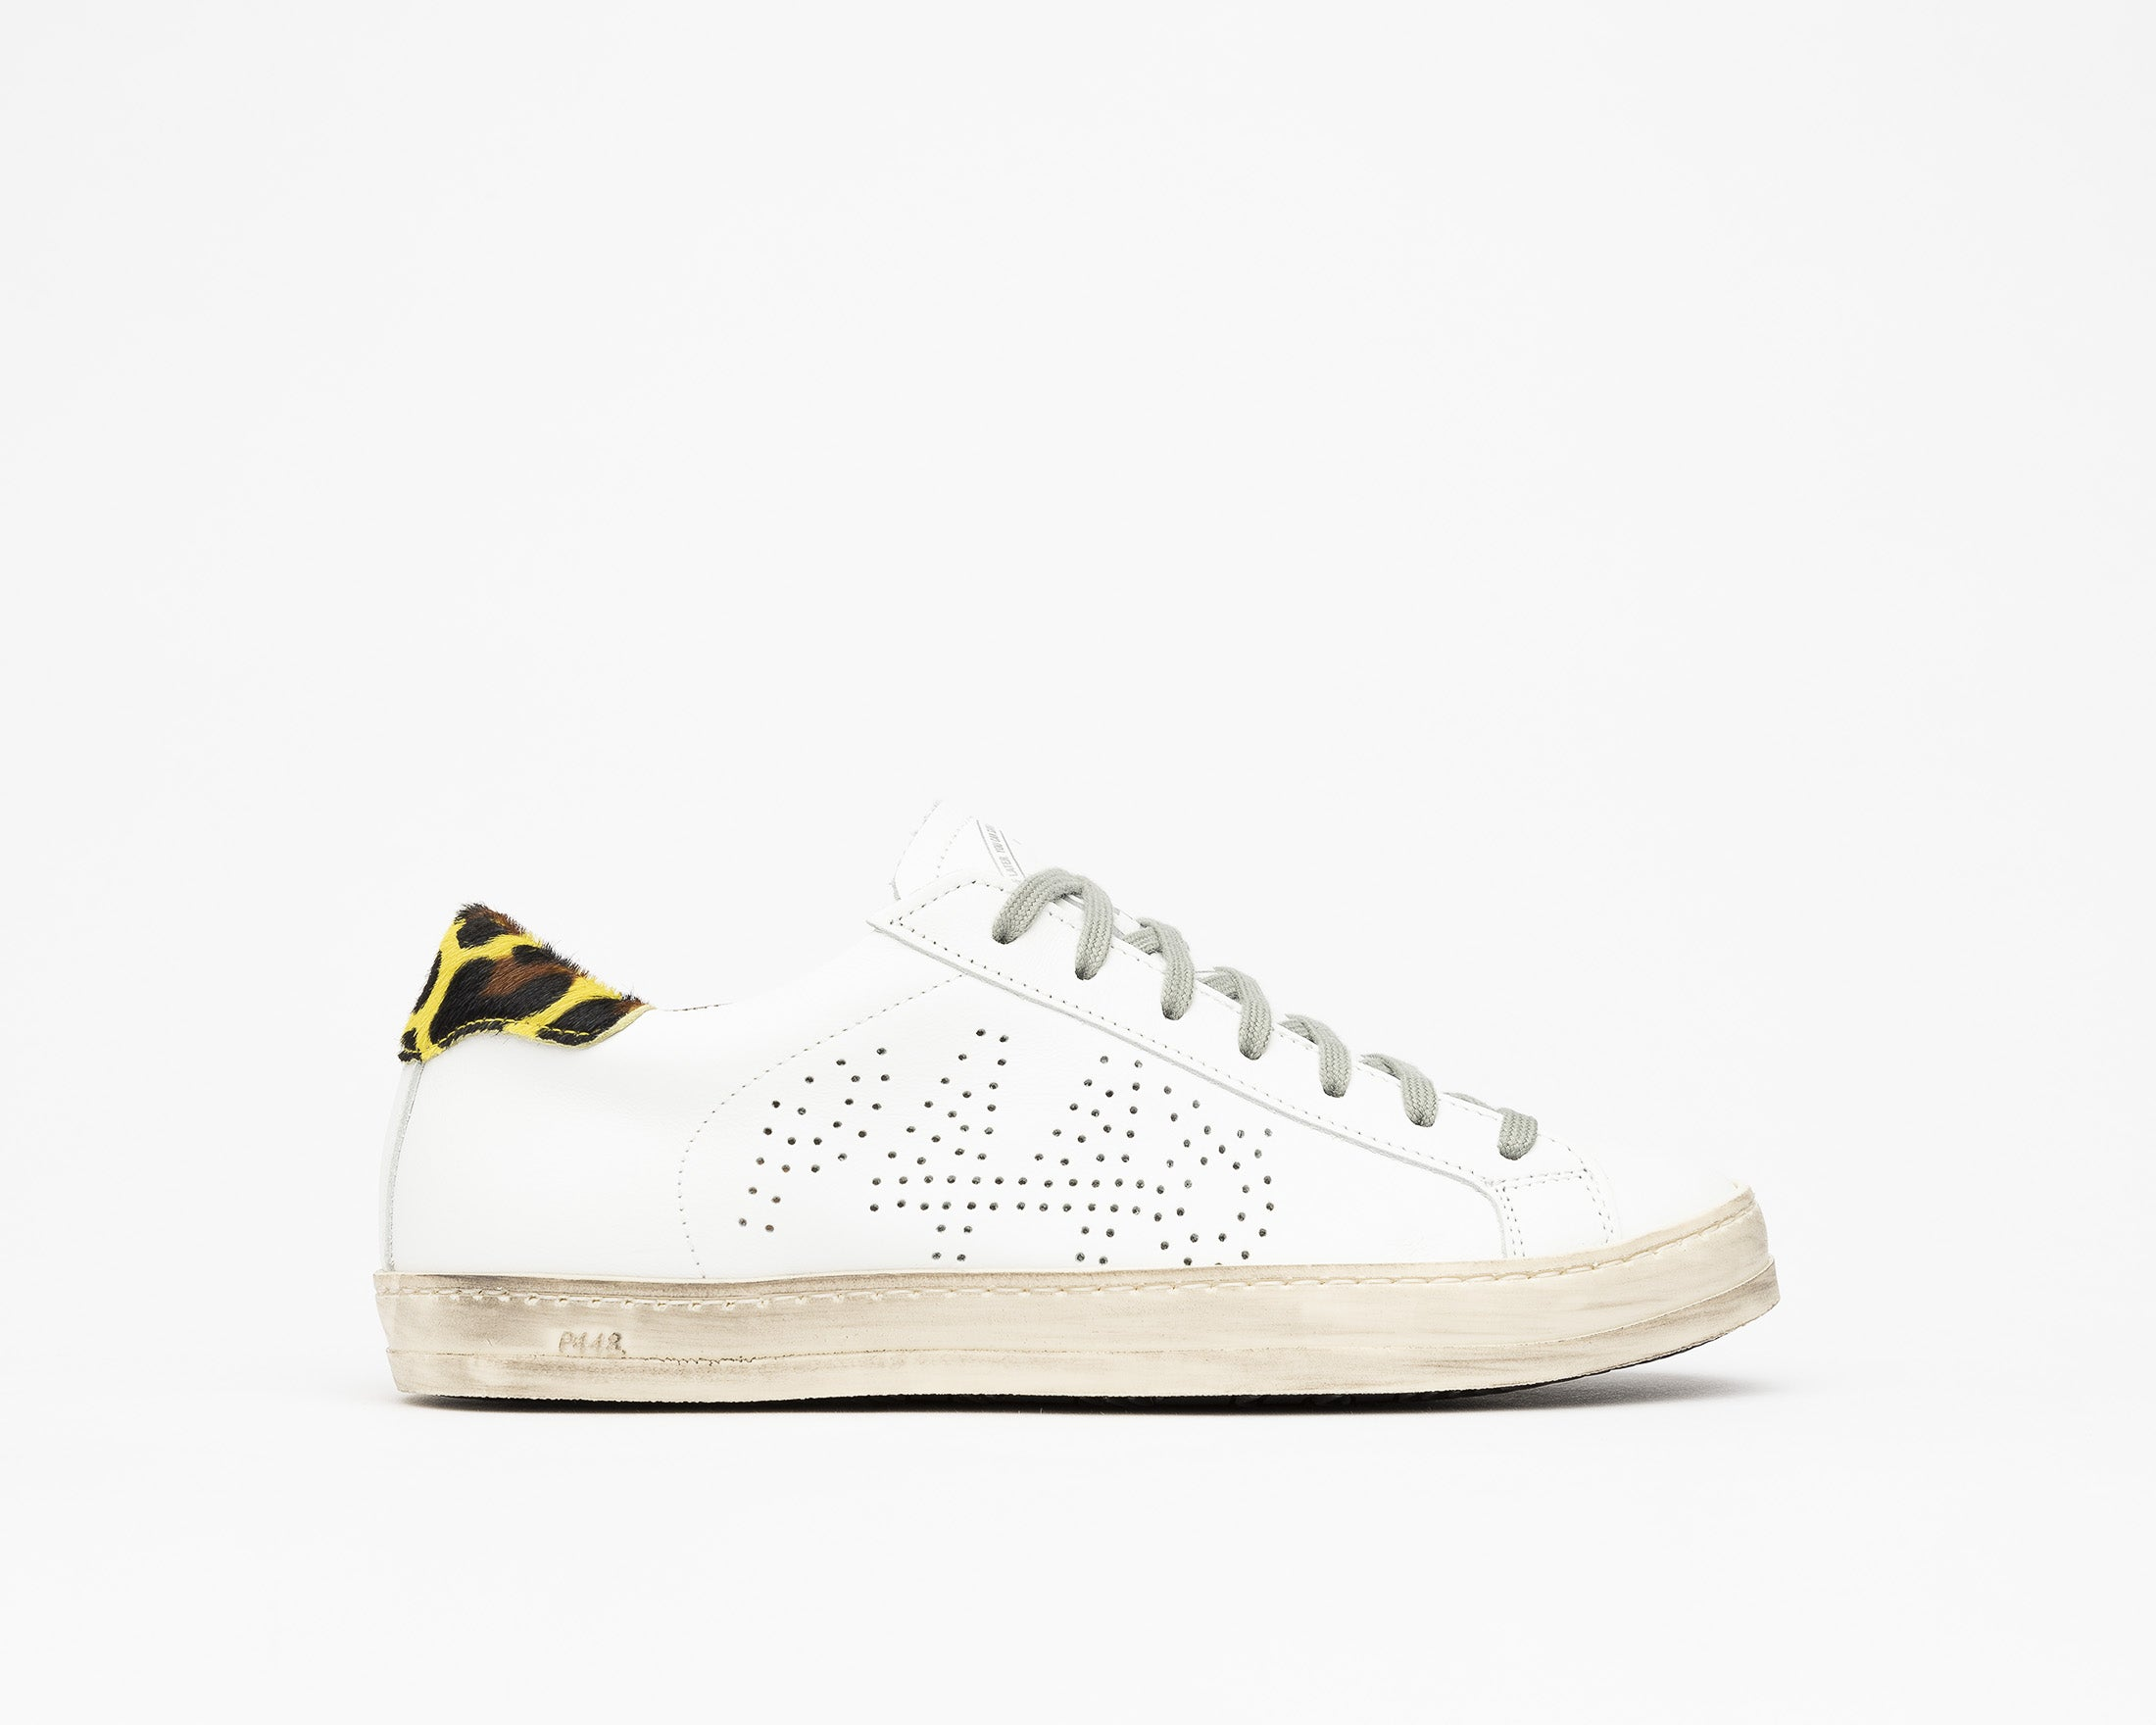 John Low-Top Sneaker in White/Cleo Yellow - Profile